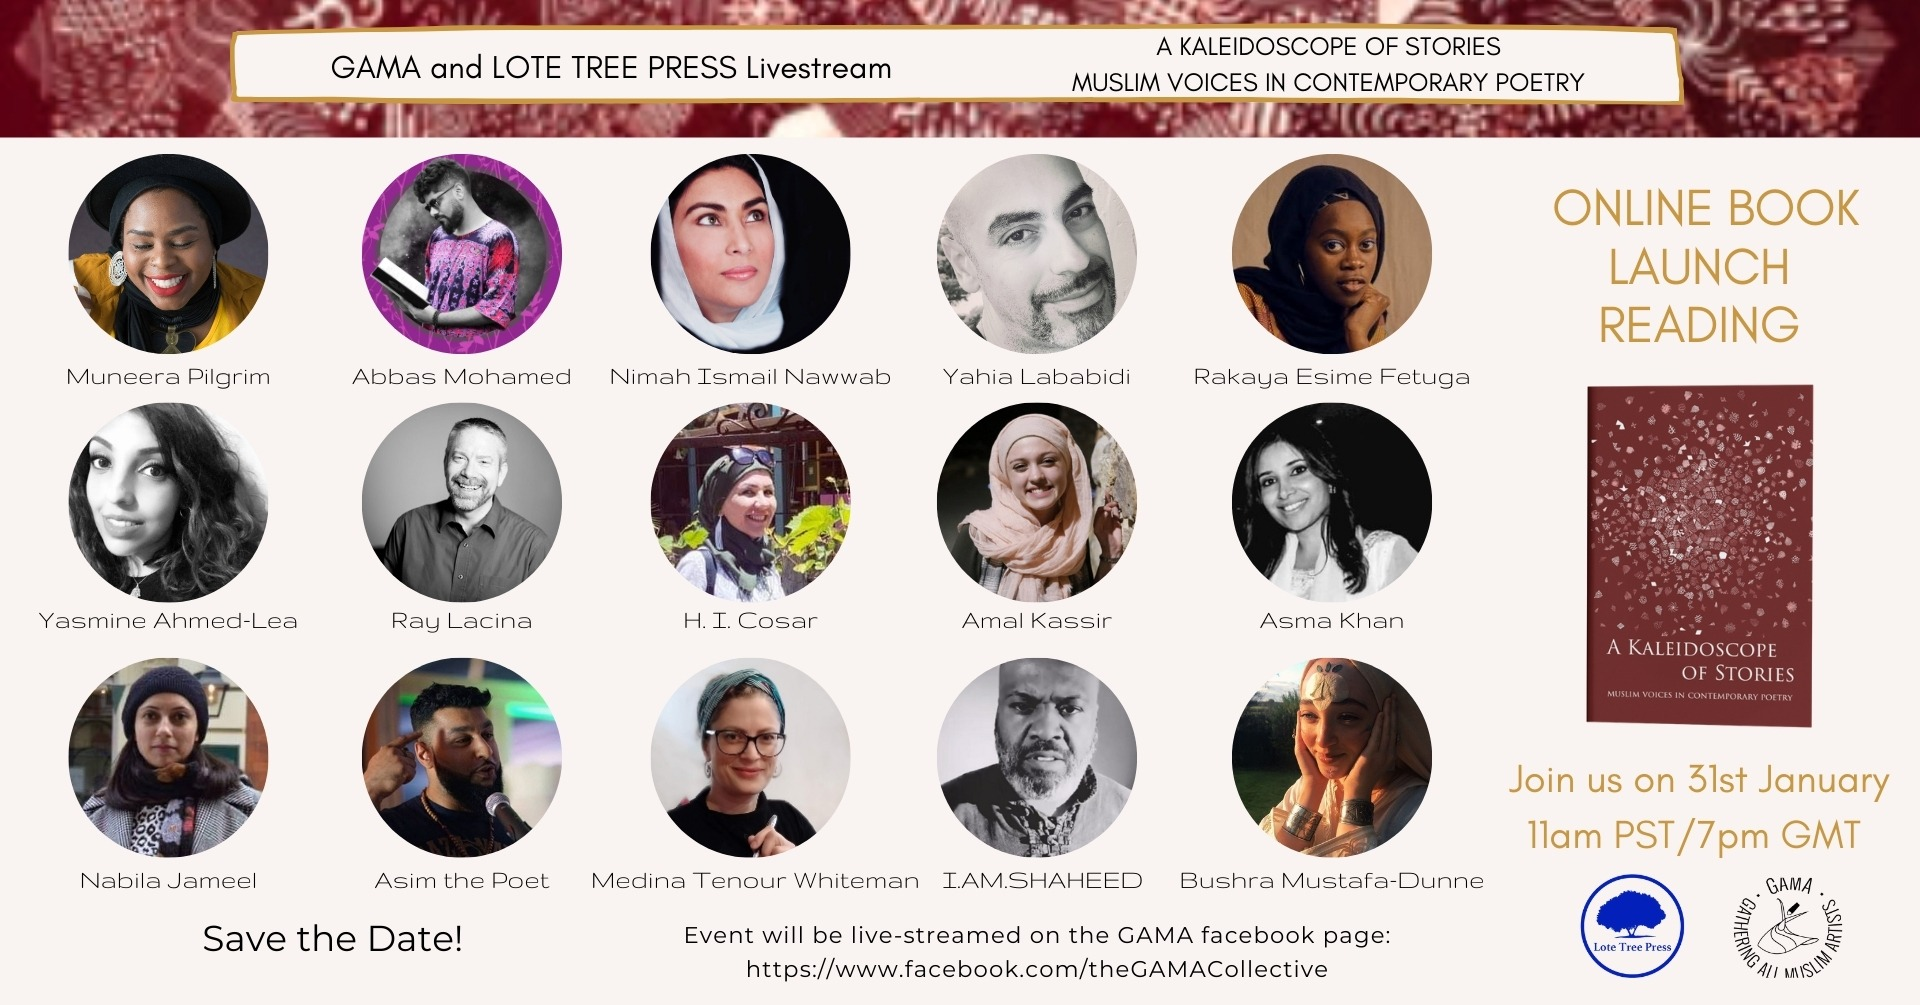 A Kaleidoscope of Stories Online Launch